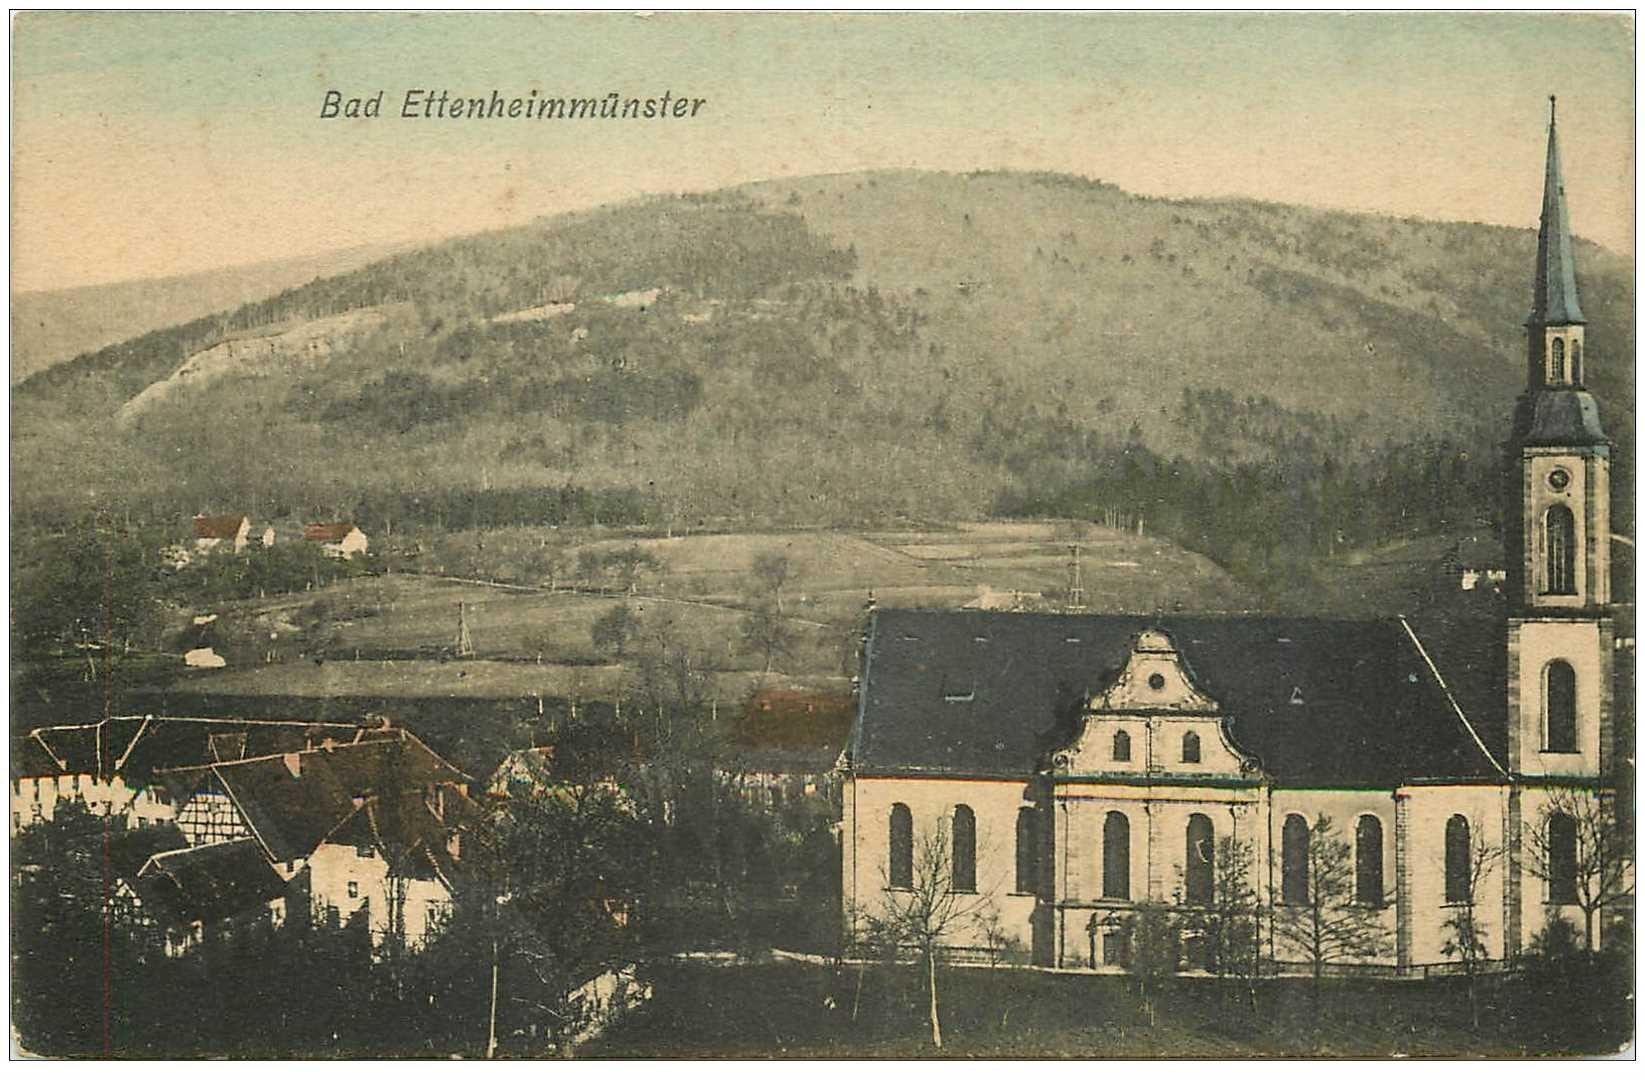 carte postale ancienne Bad Ettenheimmünster